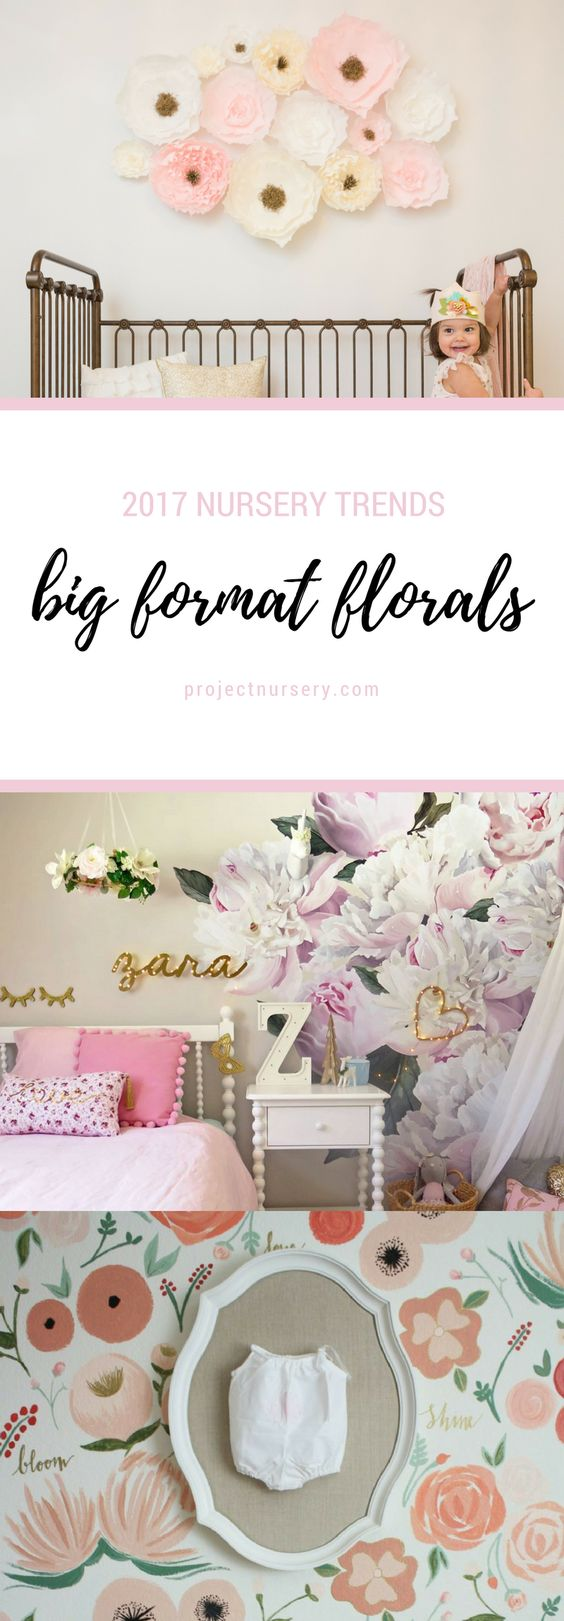 2017 Nursery Trends: Big format floral wall accents - We LOVE this trend for a baby girl nursery!